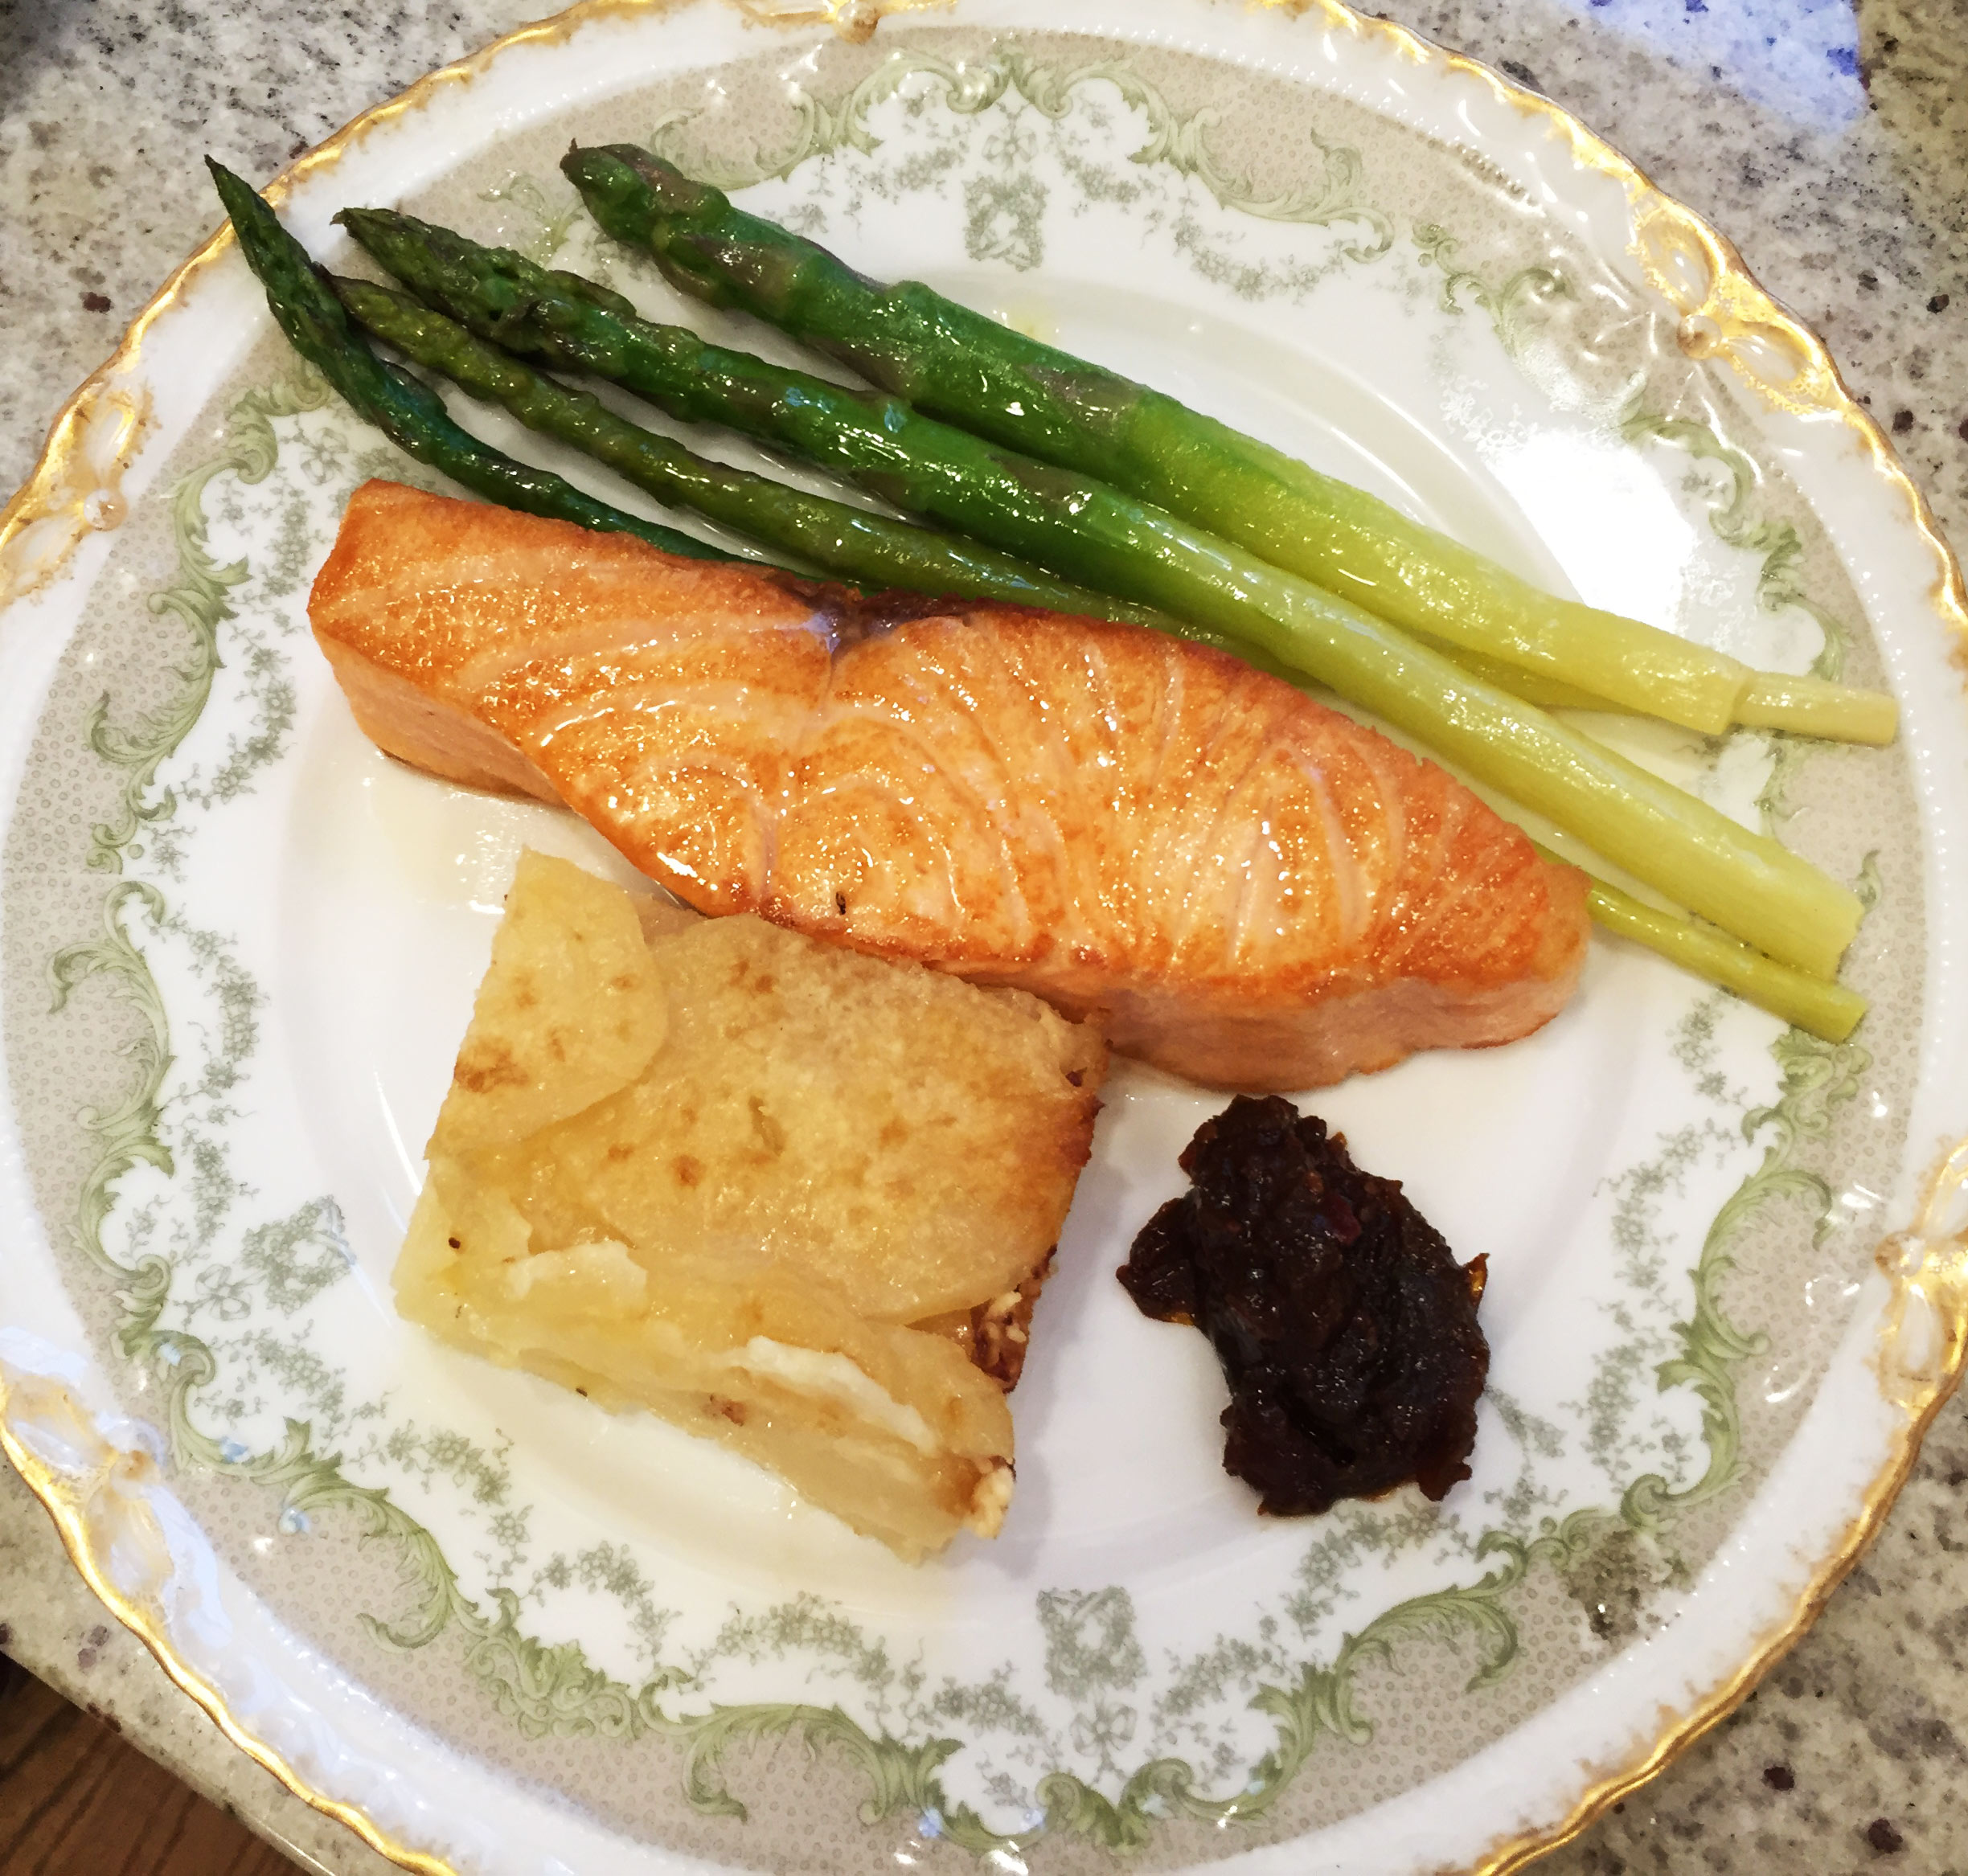 Salt Seared Salmon with Fresh Asparagus, Potato Gratin & Chutney